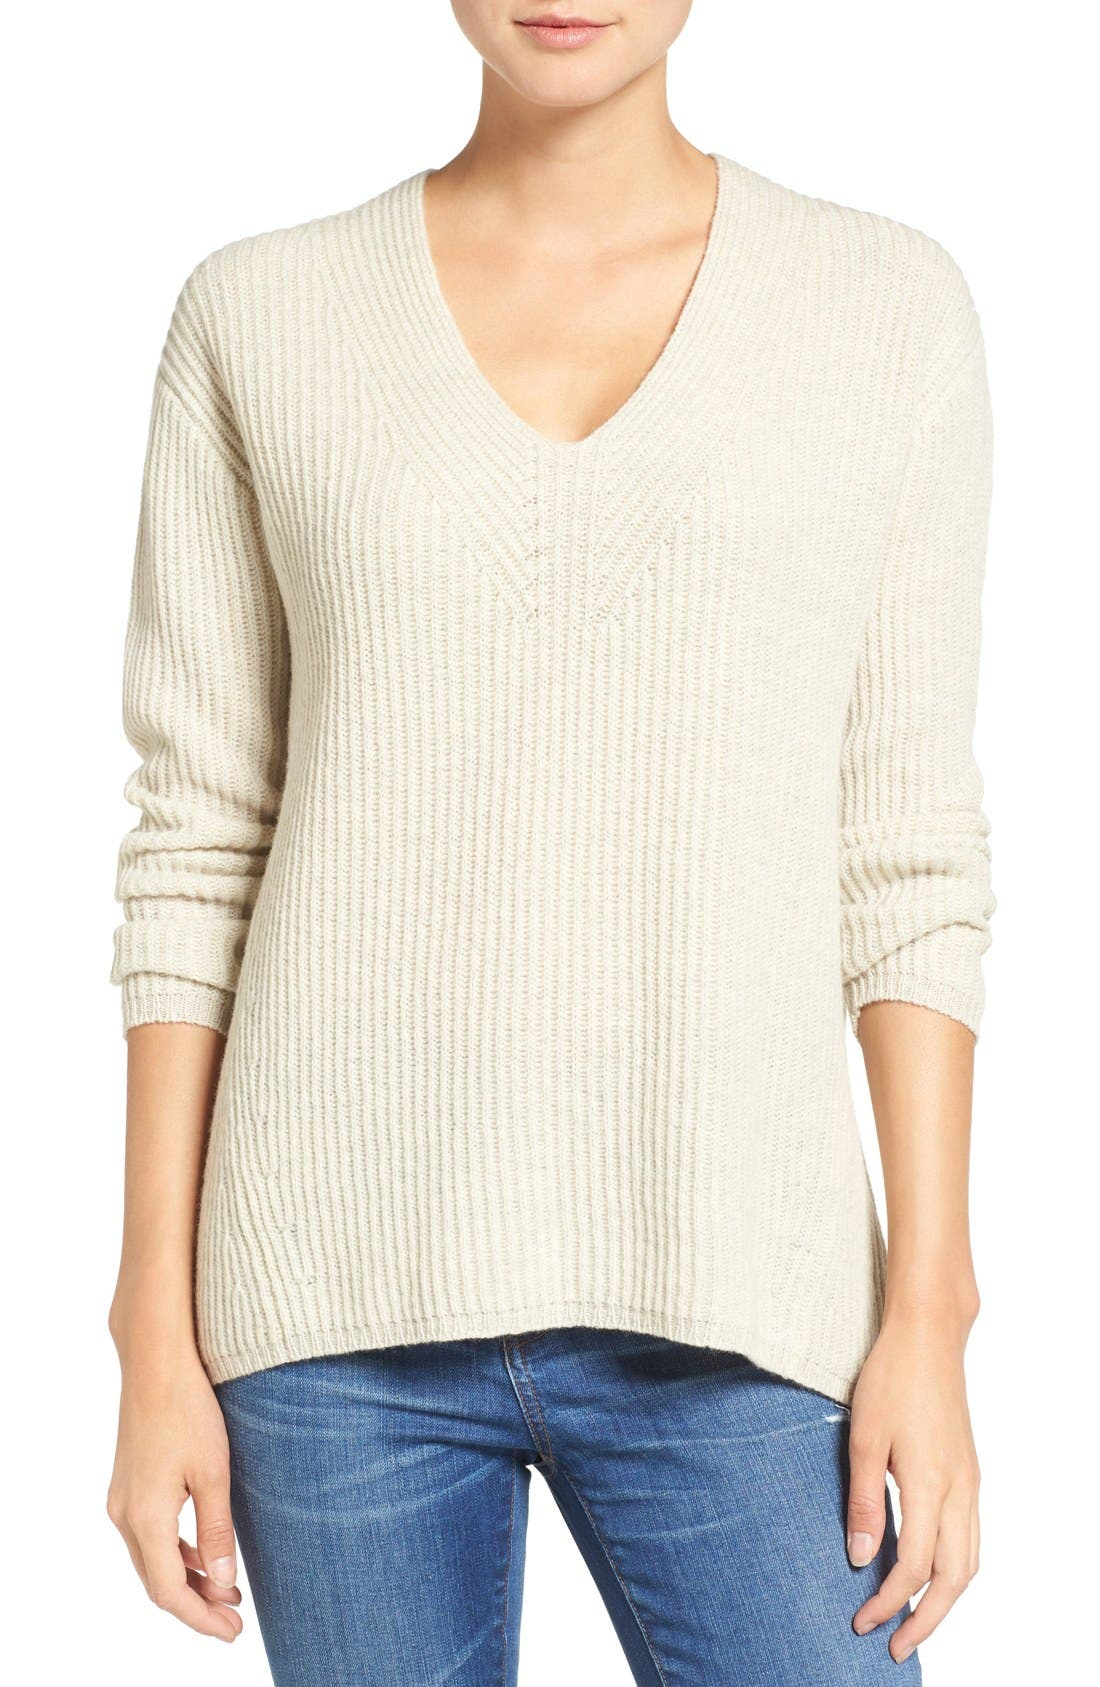 Woodside Pullover Sweater,                             Main thumbnail 4, color,